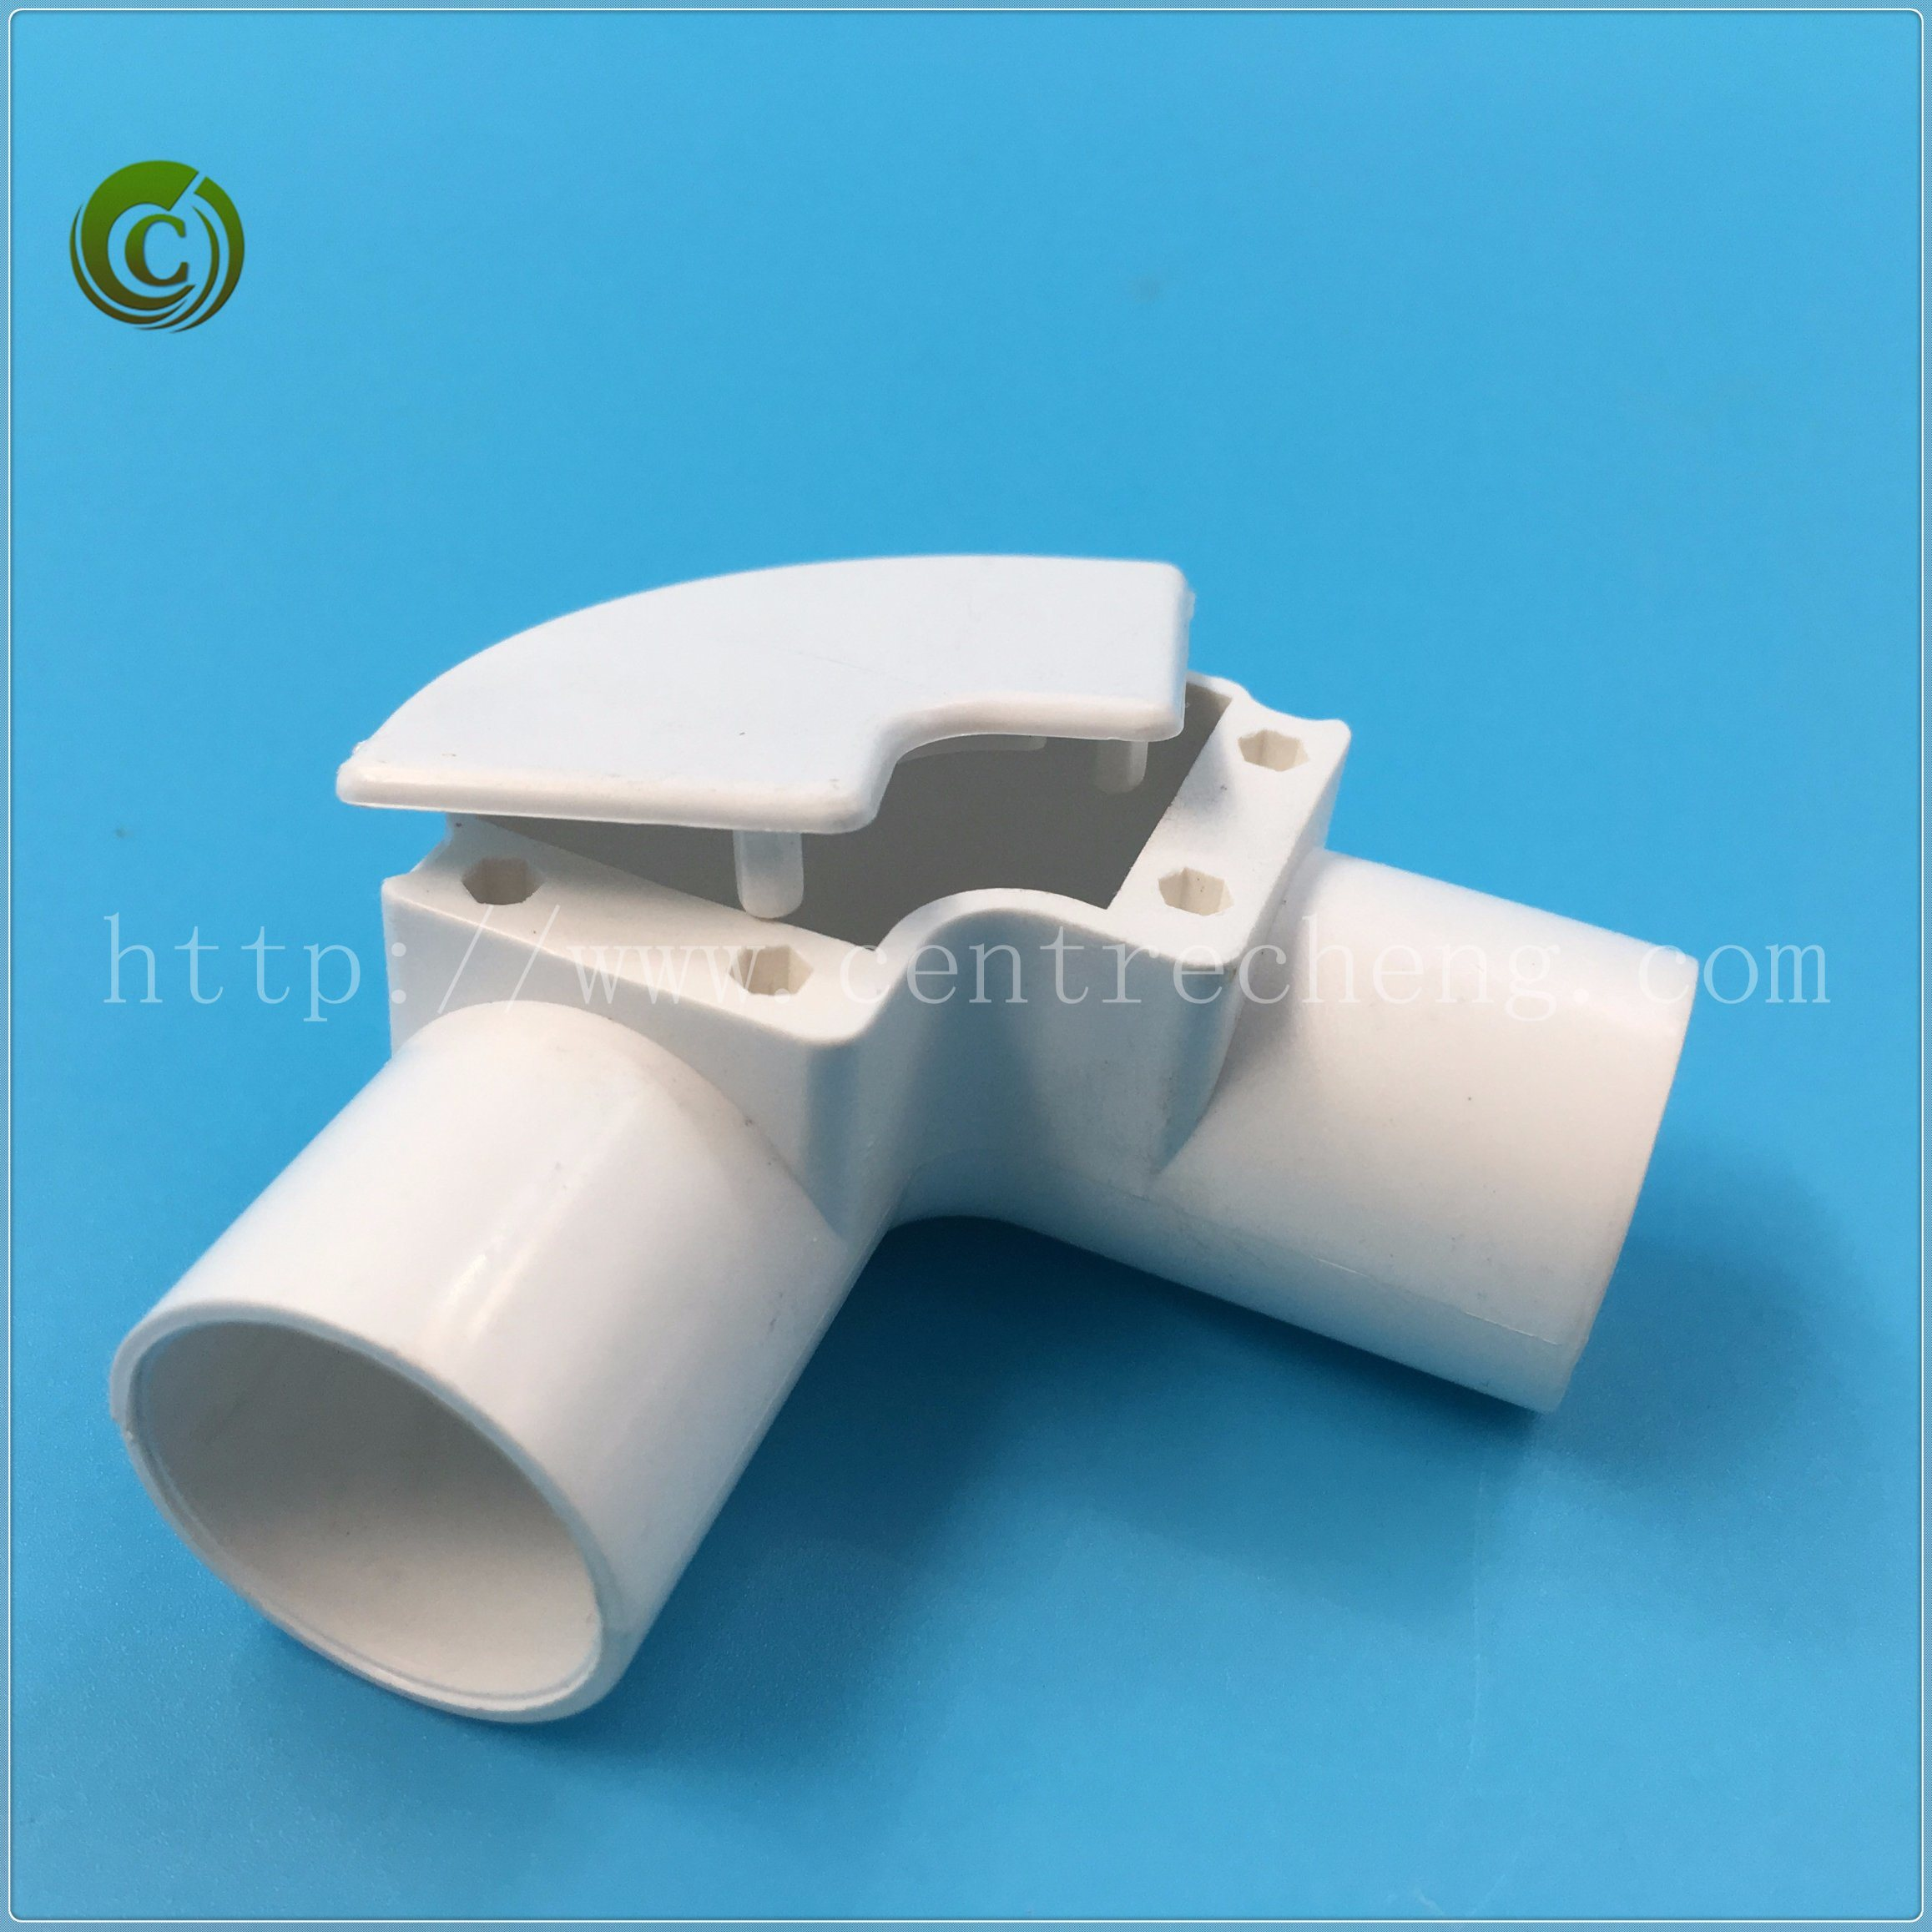 Electrical Pvc Pipes Pipe Electric Threader Buy Of Conduits Trunkings Plumbing Fittings Bend 32mm Plastic Wire Sc 1 St Foshan Shunde Liankong Hardware And Products Co Limited